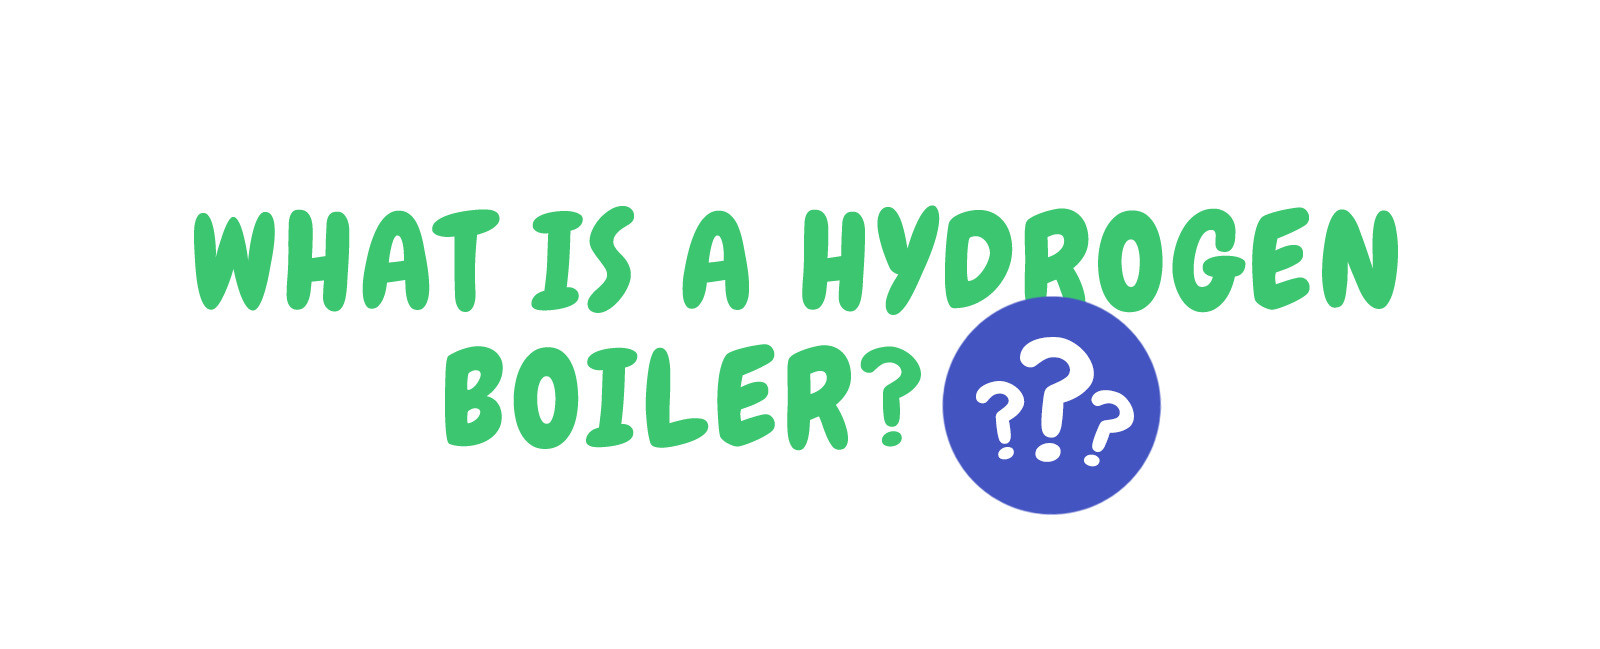 What Is A Hydrogen Boiler